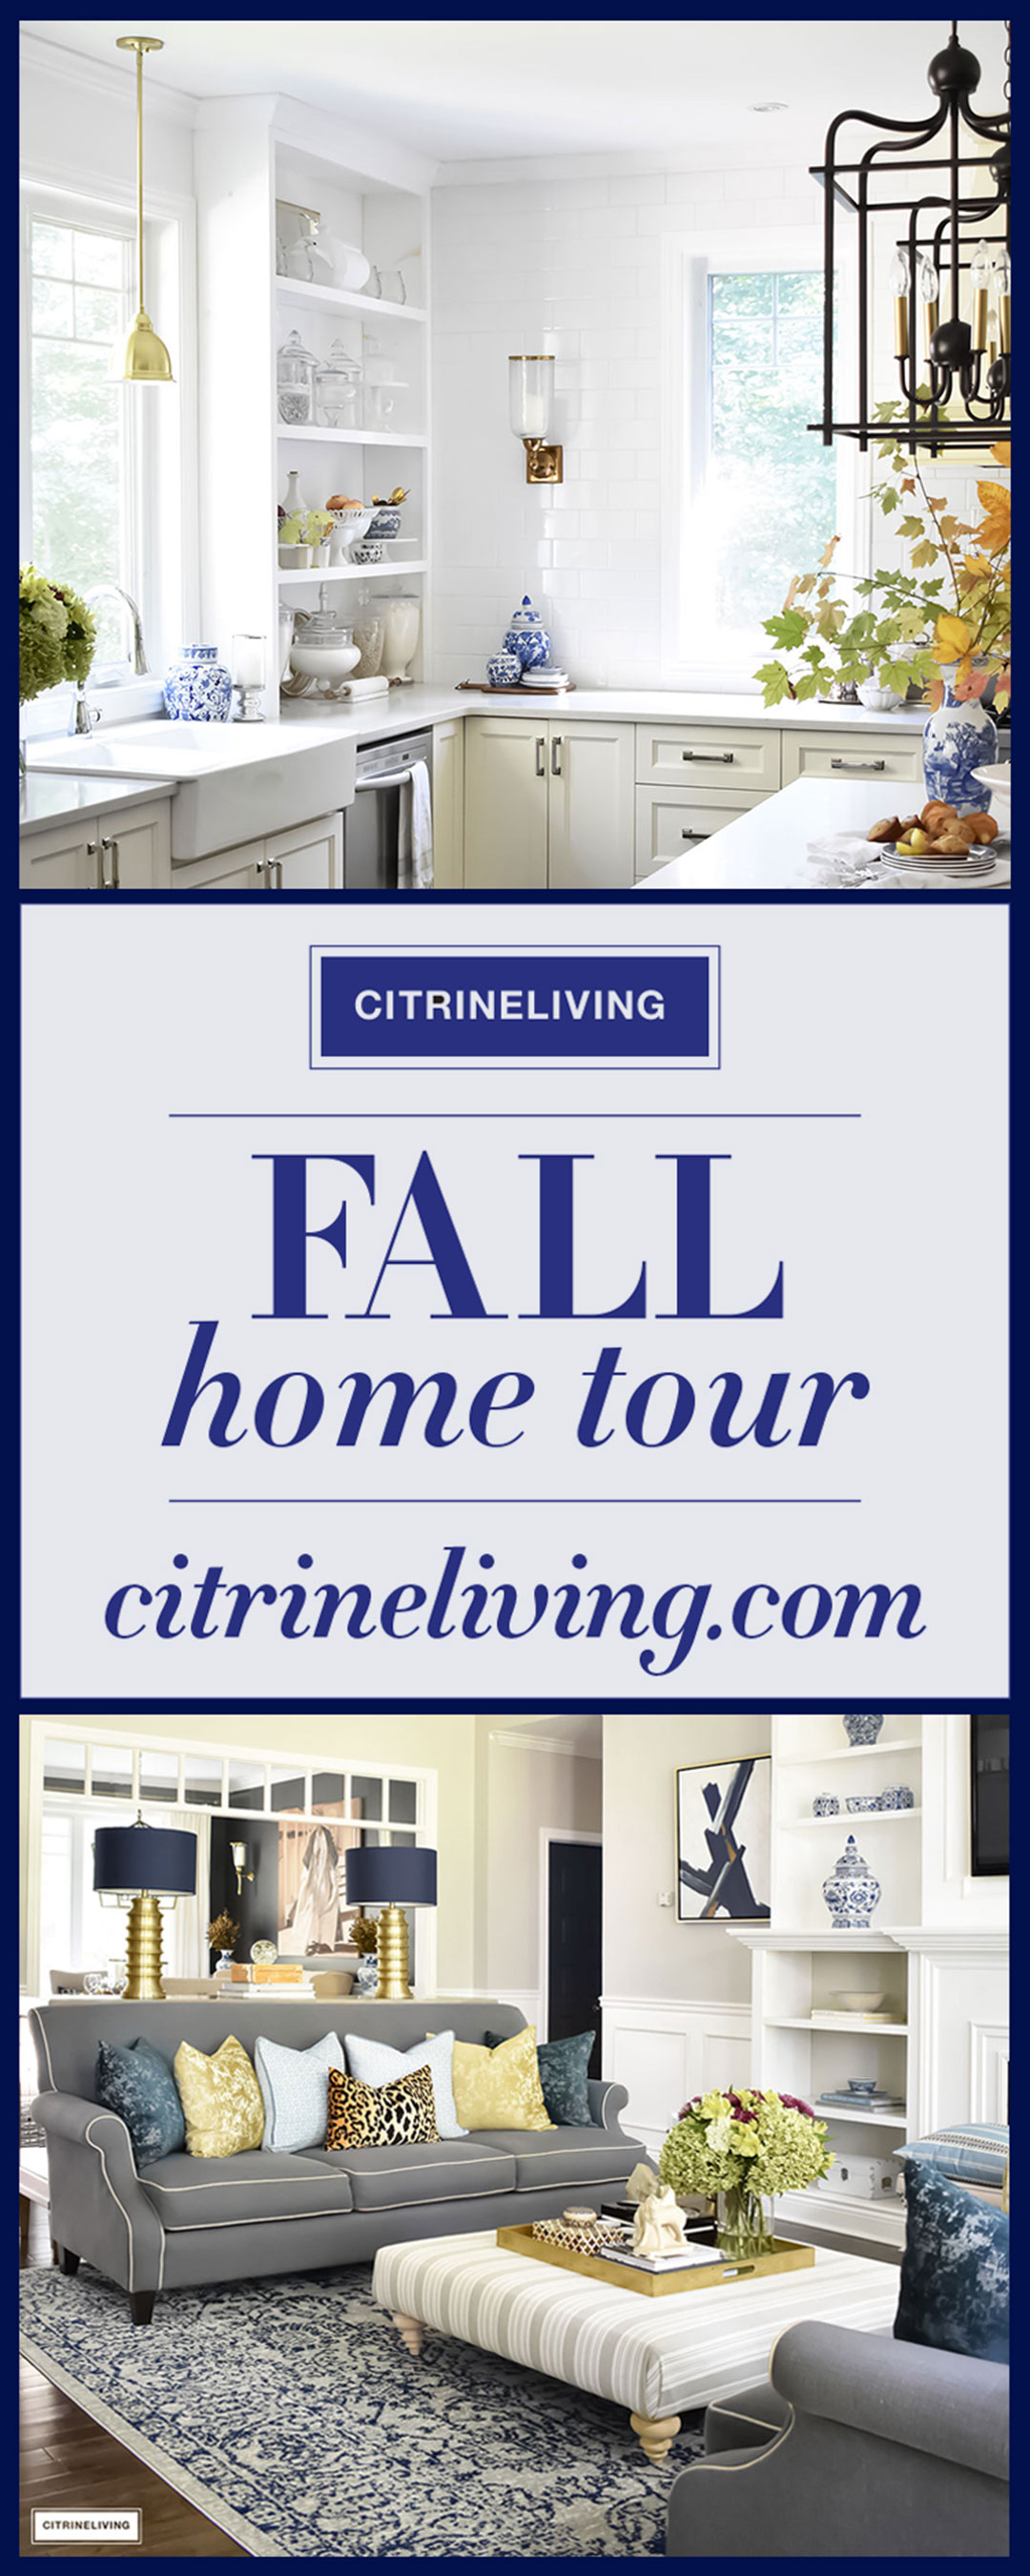 Fall Home Tour featuring layers of rich, colors and textures - navy and gold accents, fall leaves, blue and white accessories and leopard print.